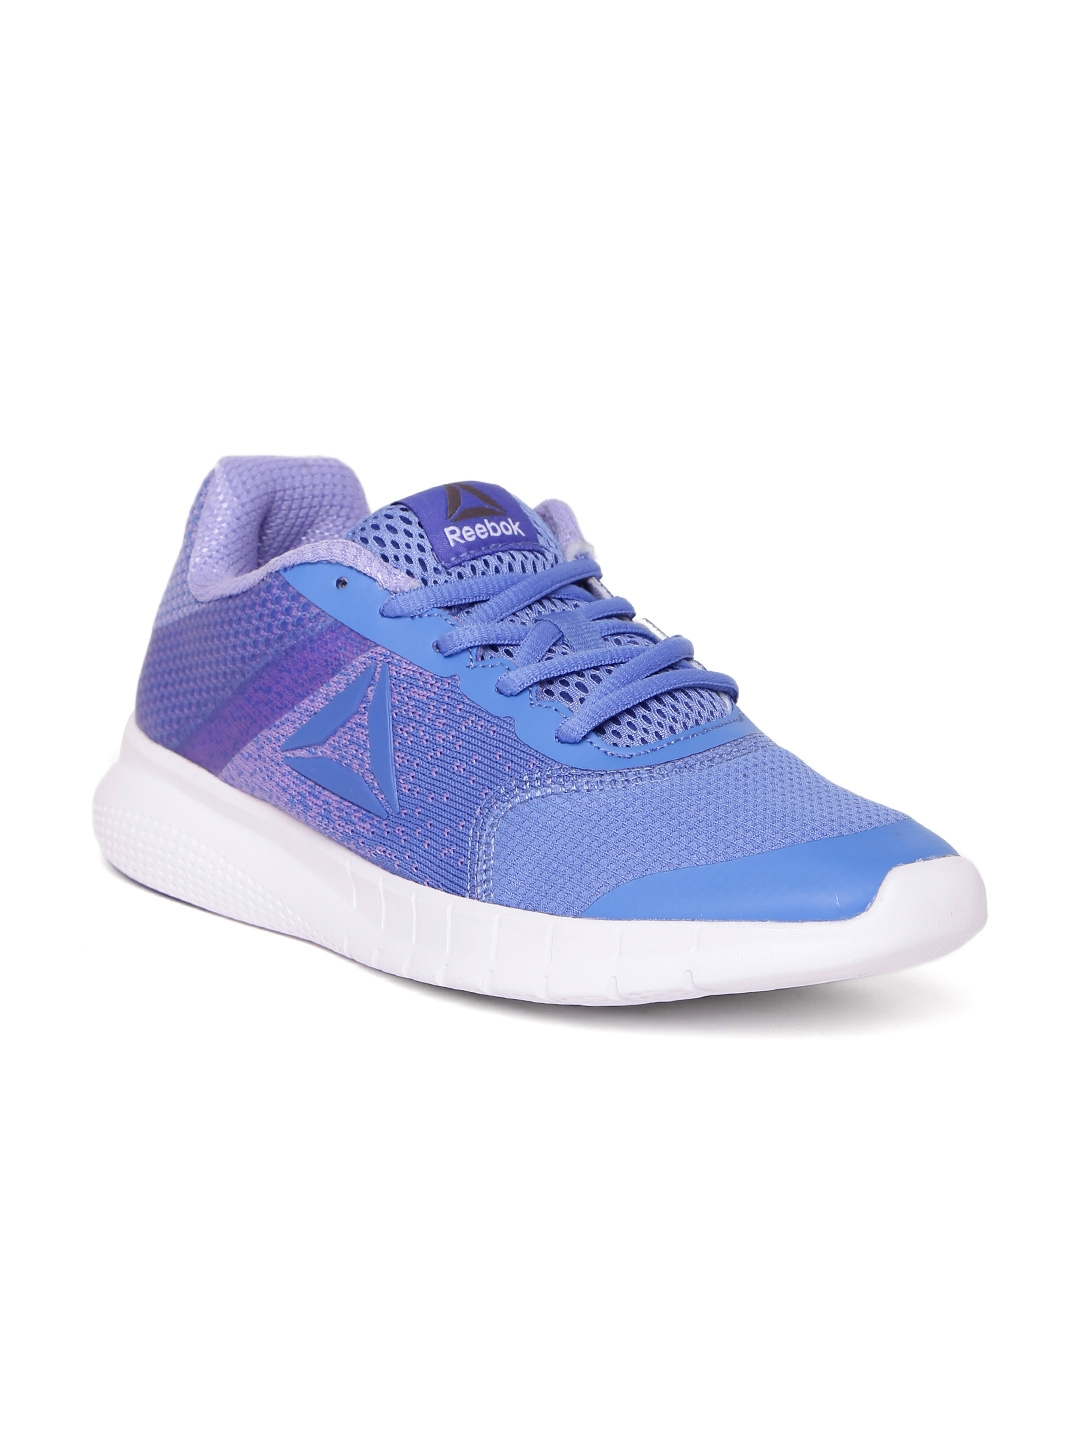 639732fd10f635 Buy Reebok Girls Blue INSTALITE Running Shoes - Sports Shoes for ...